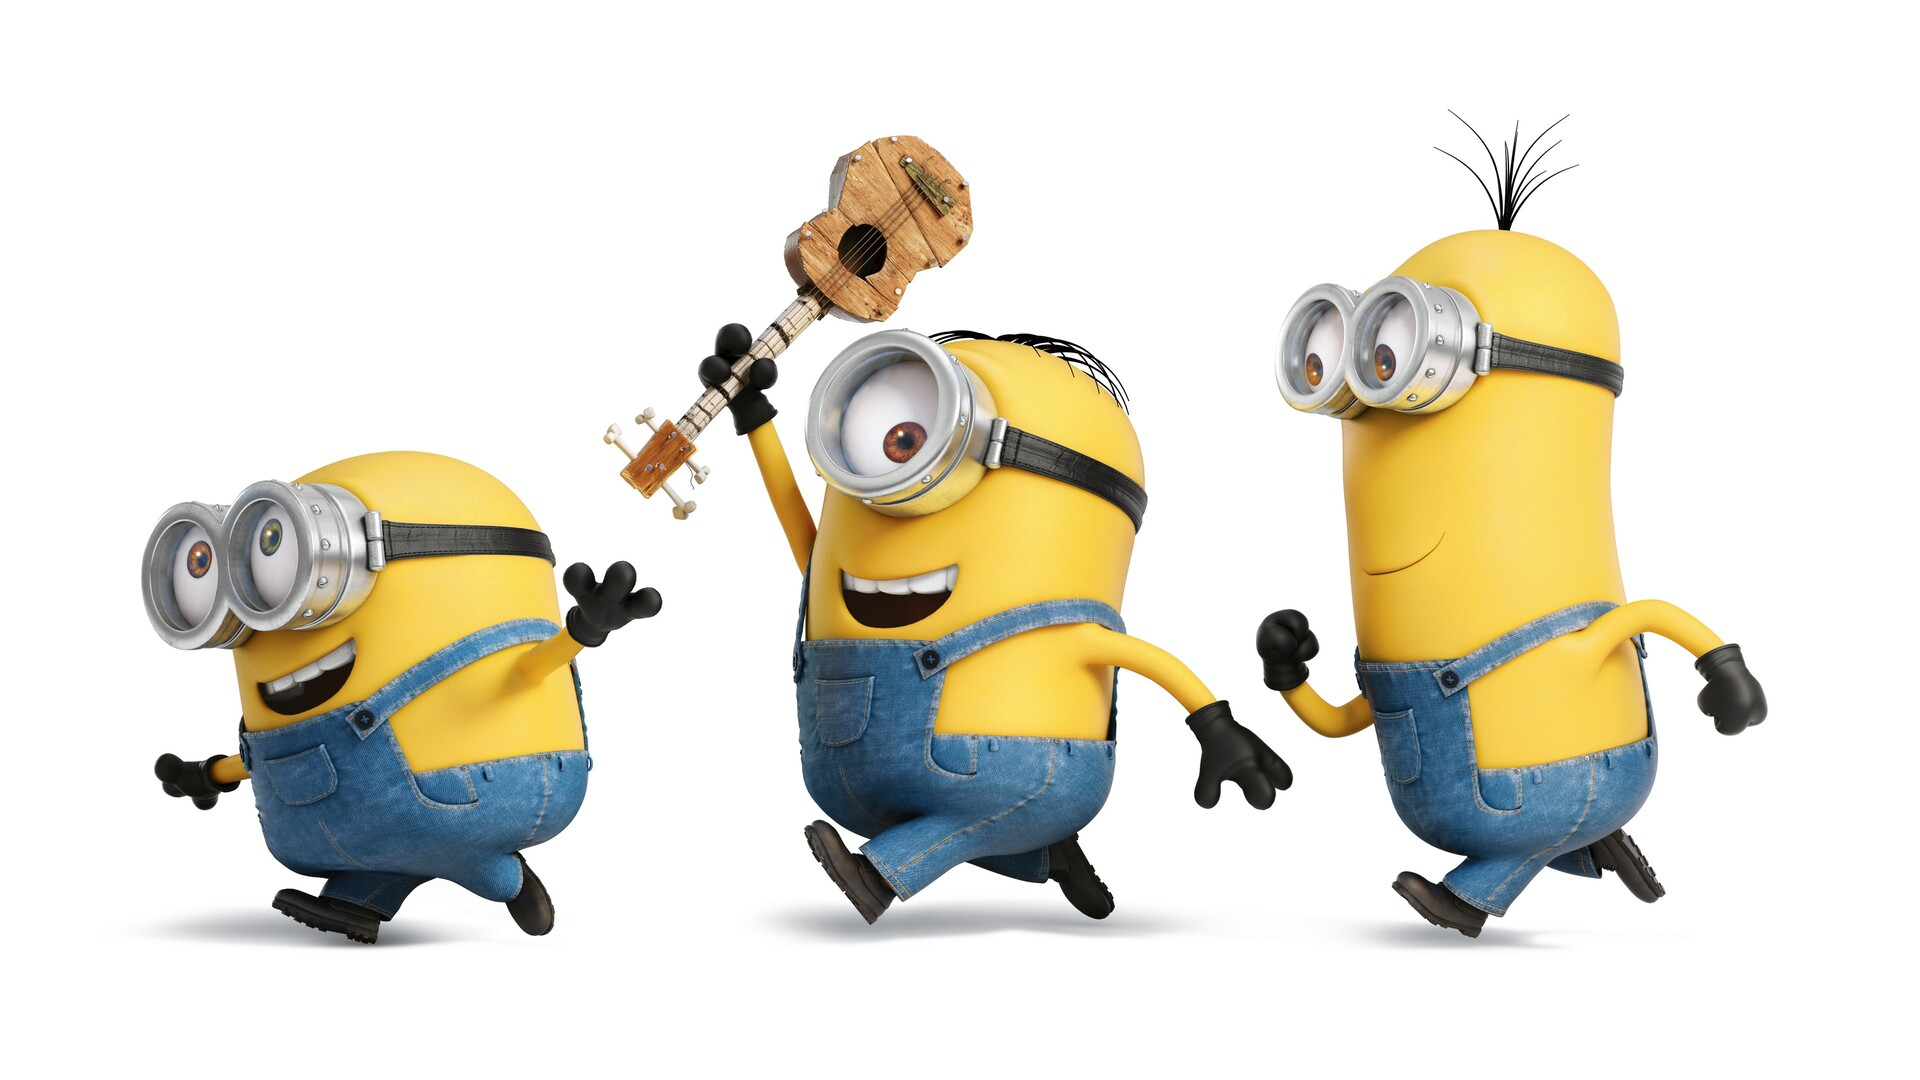 1920x1080 minions funny 2 laptop full hd 1080p hd 4k wallpapers